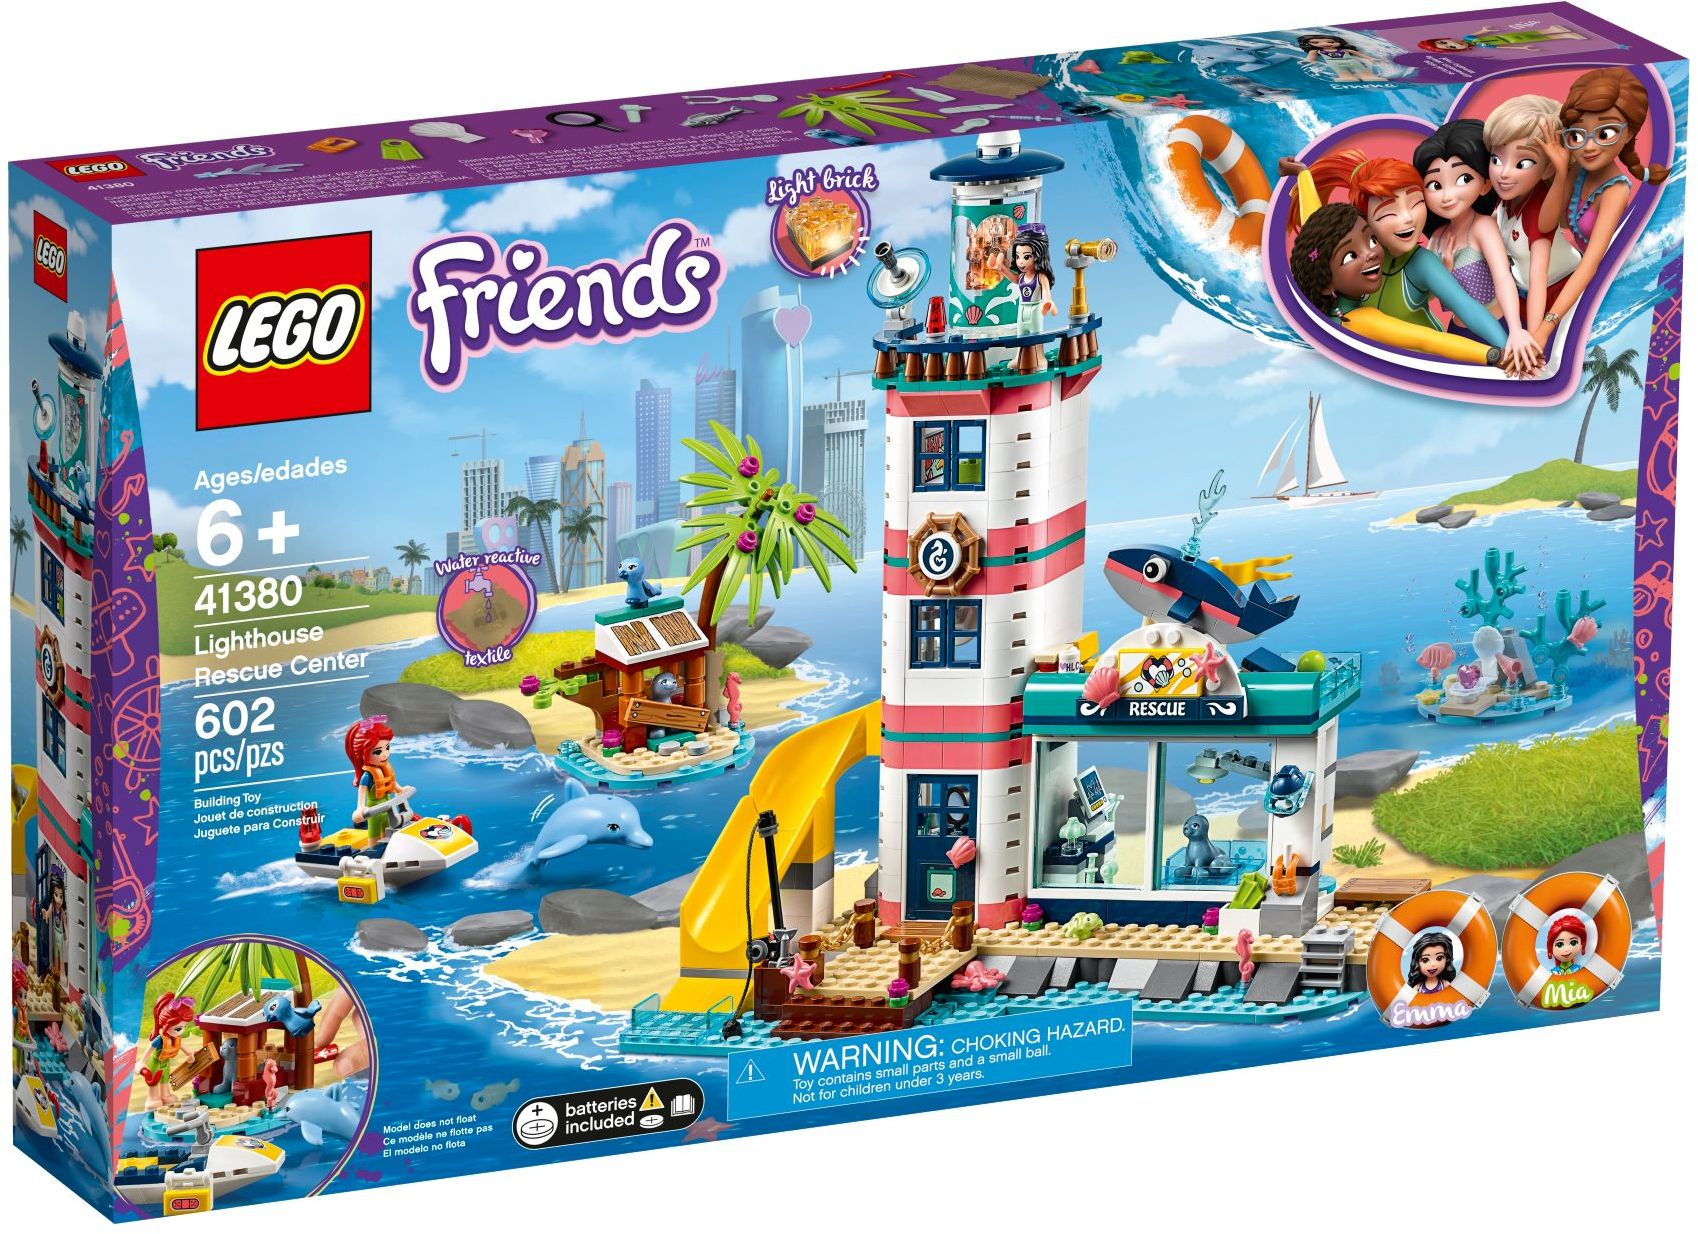 Lighthouse Wiki Friends Rescue Center41380Lego Fandom L3Rj5Aqc4S